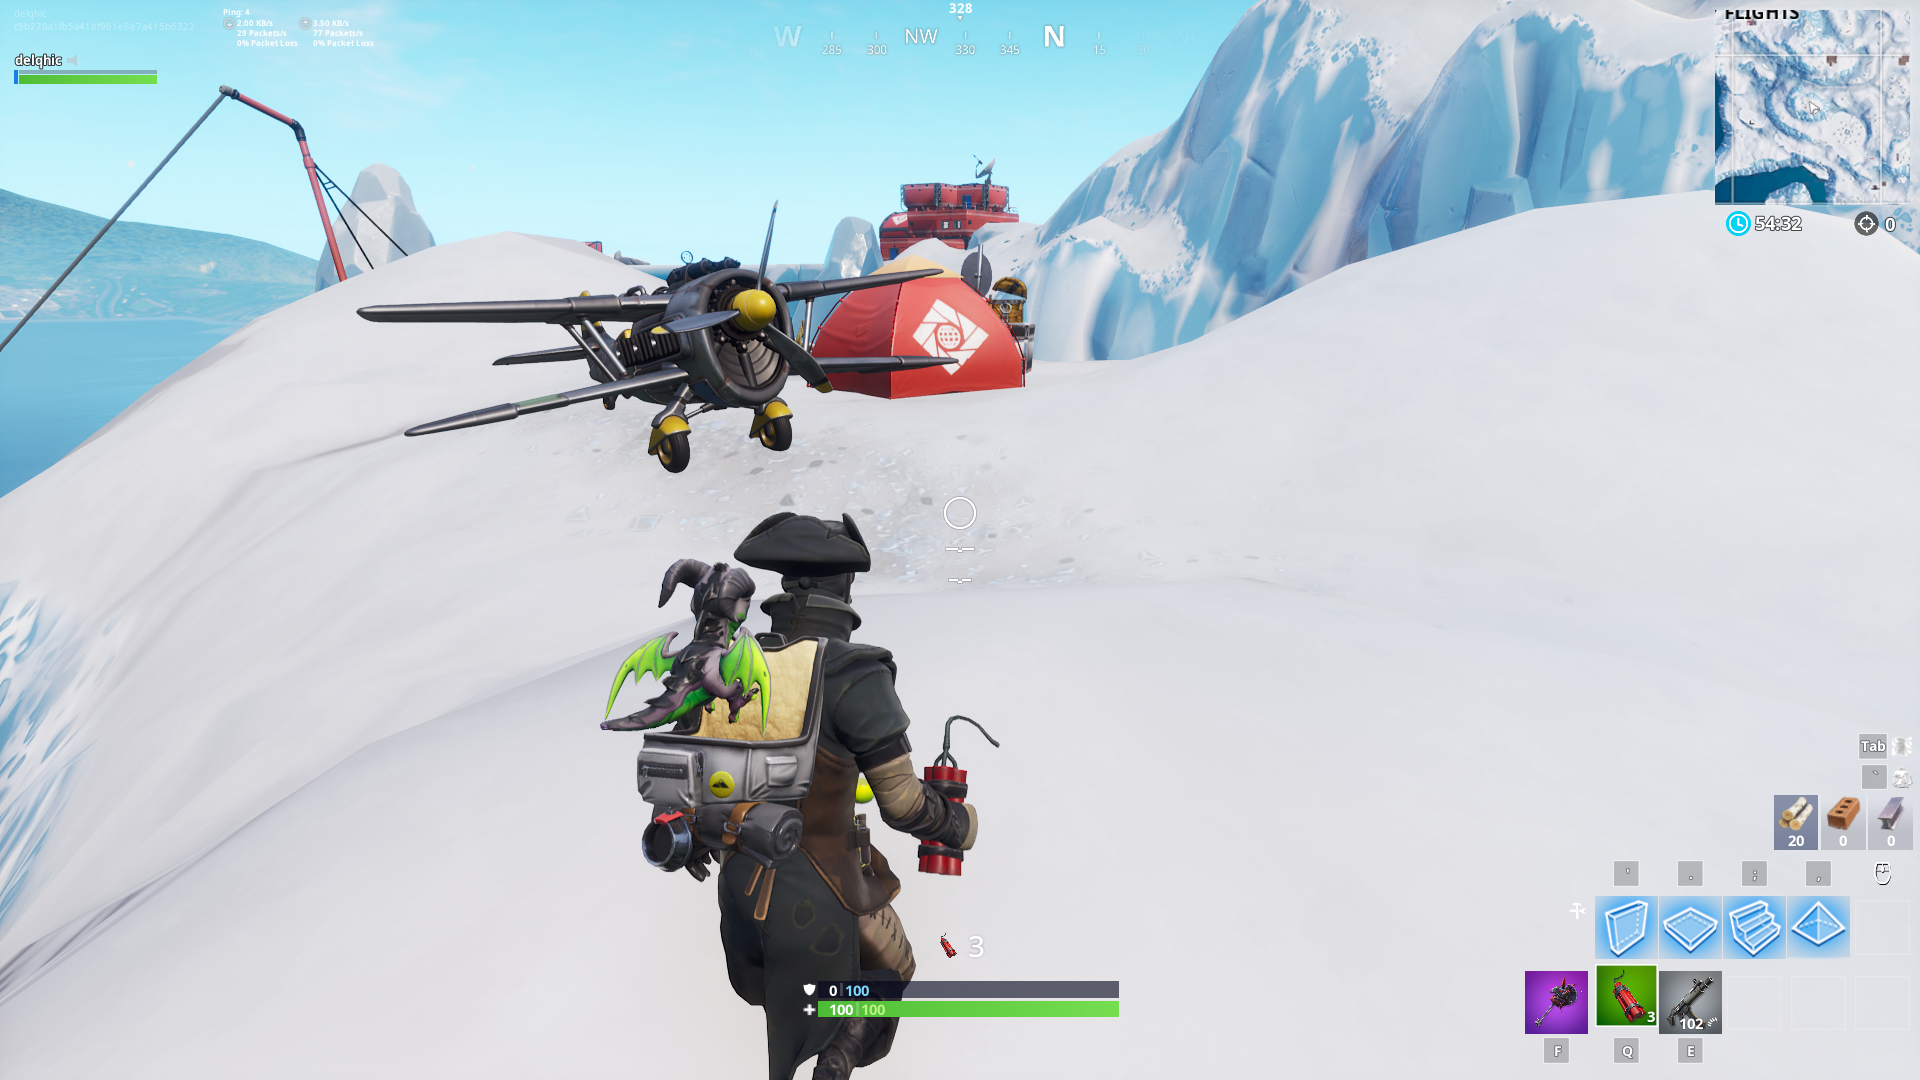 Fortnite Plane Spawn Location - Hill south of Frosty Flights